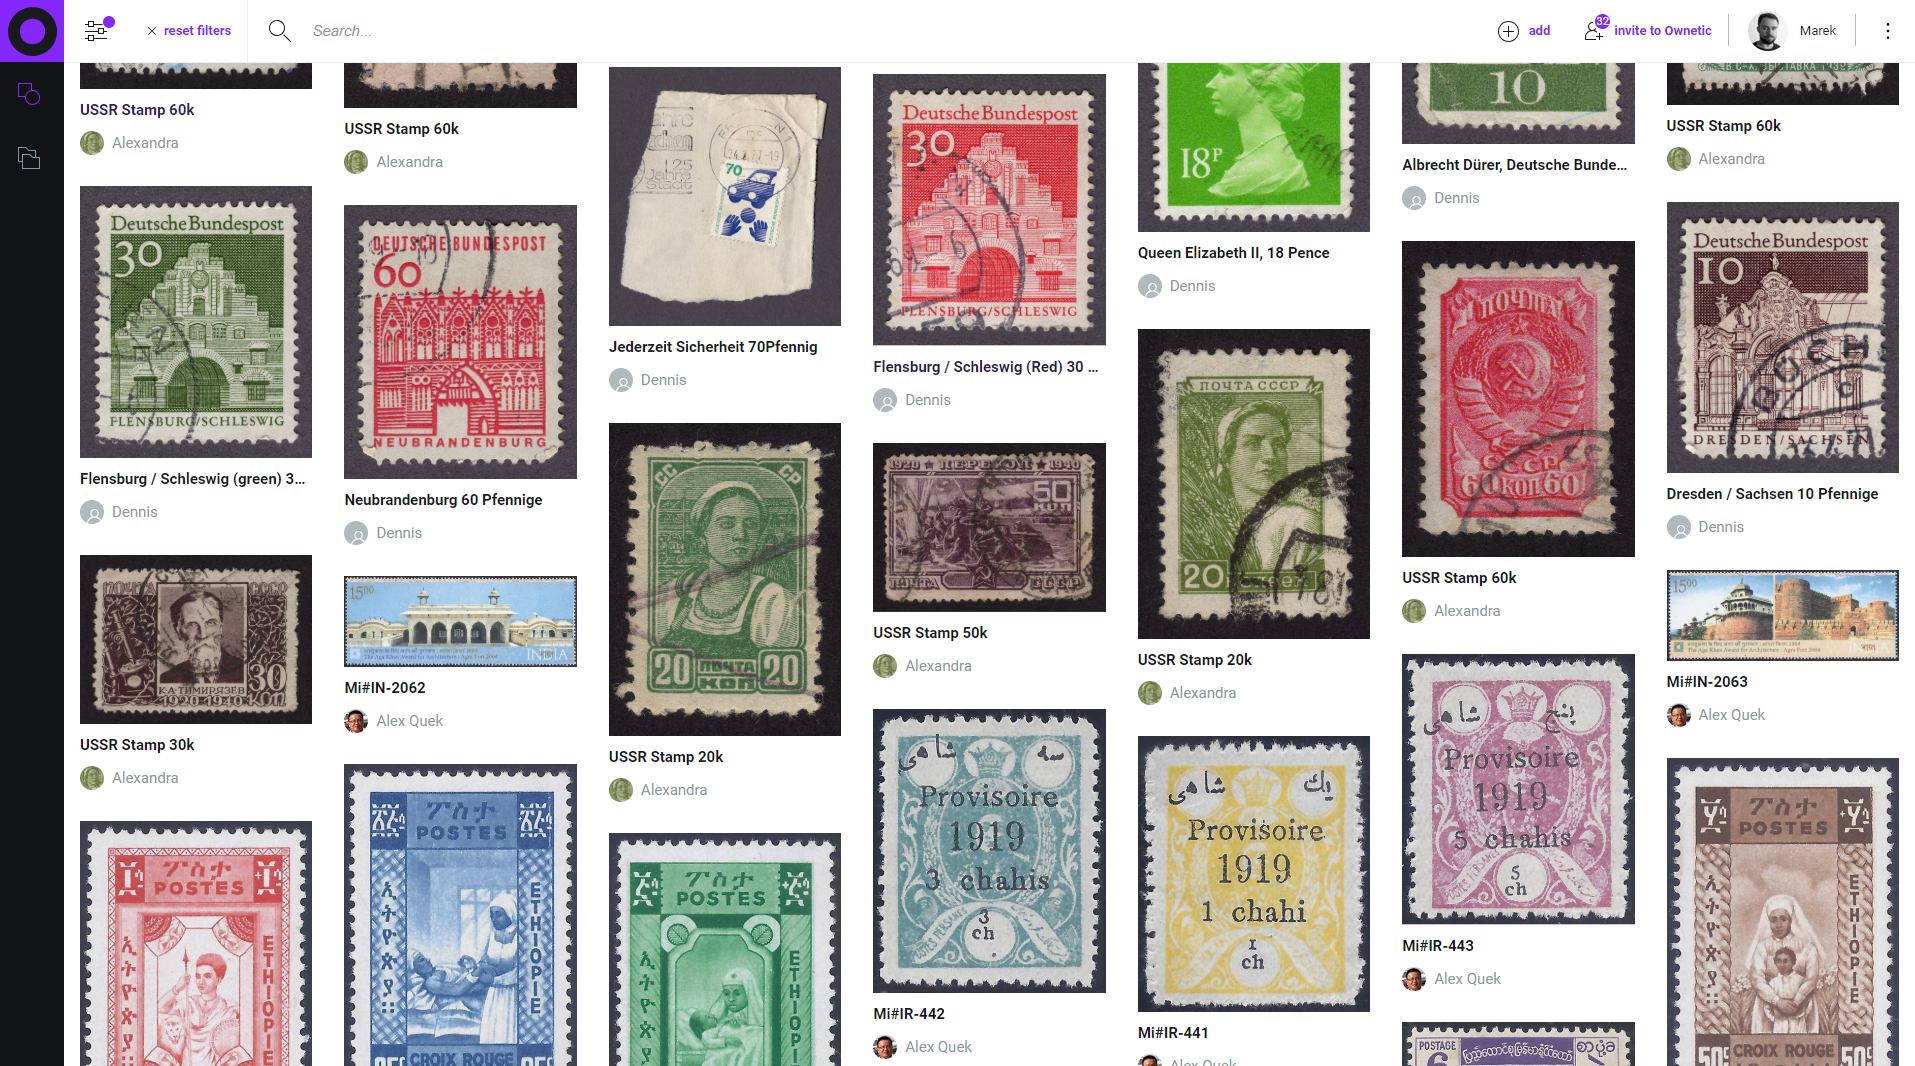 How should I catalog a stamp collection? - Quora